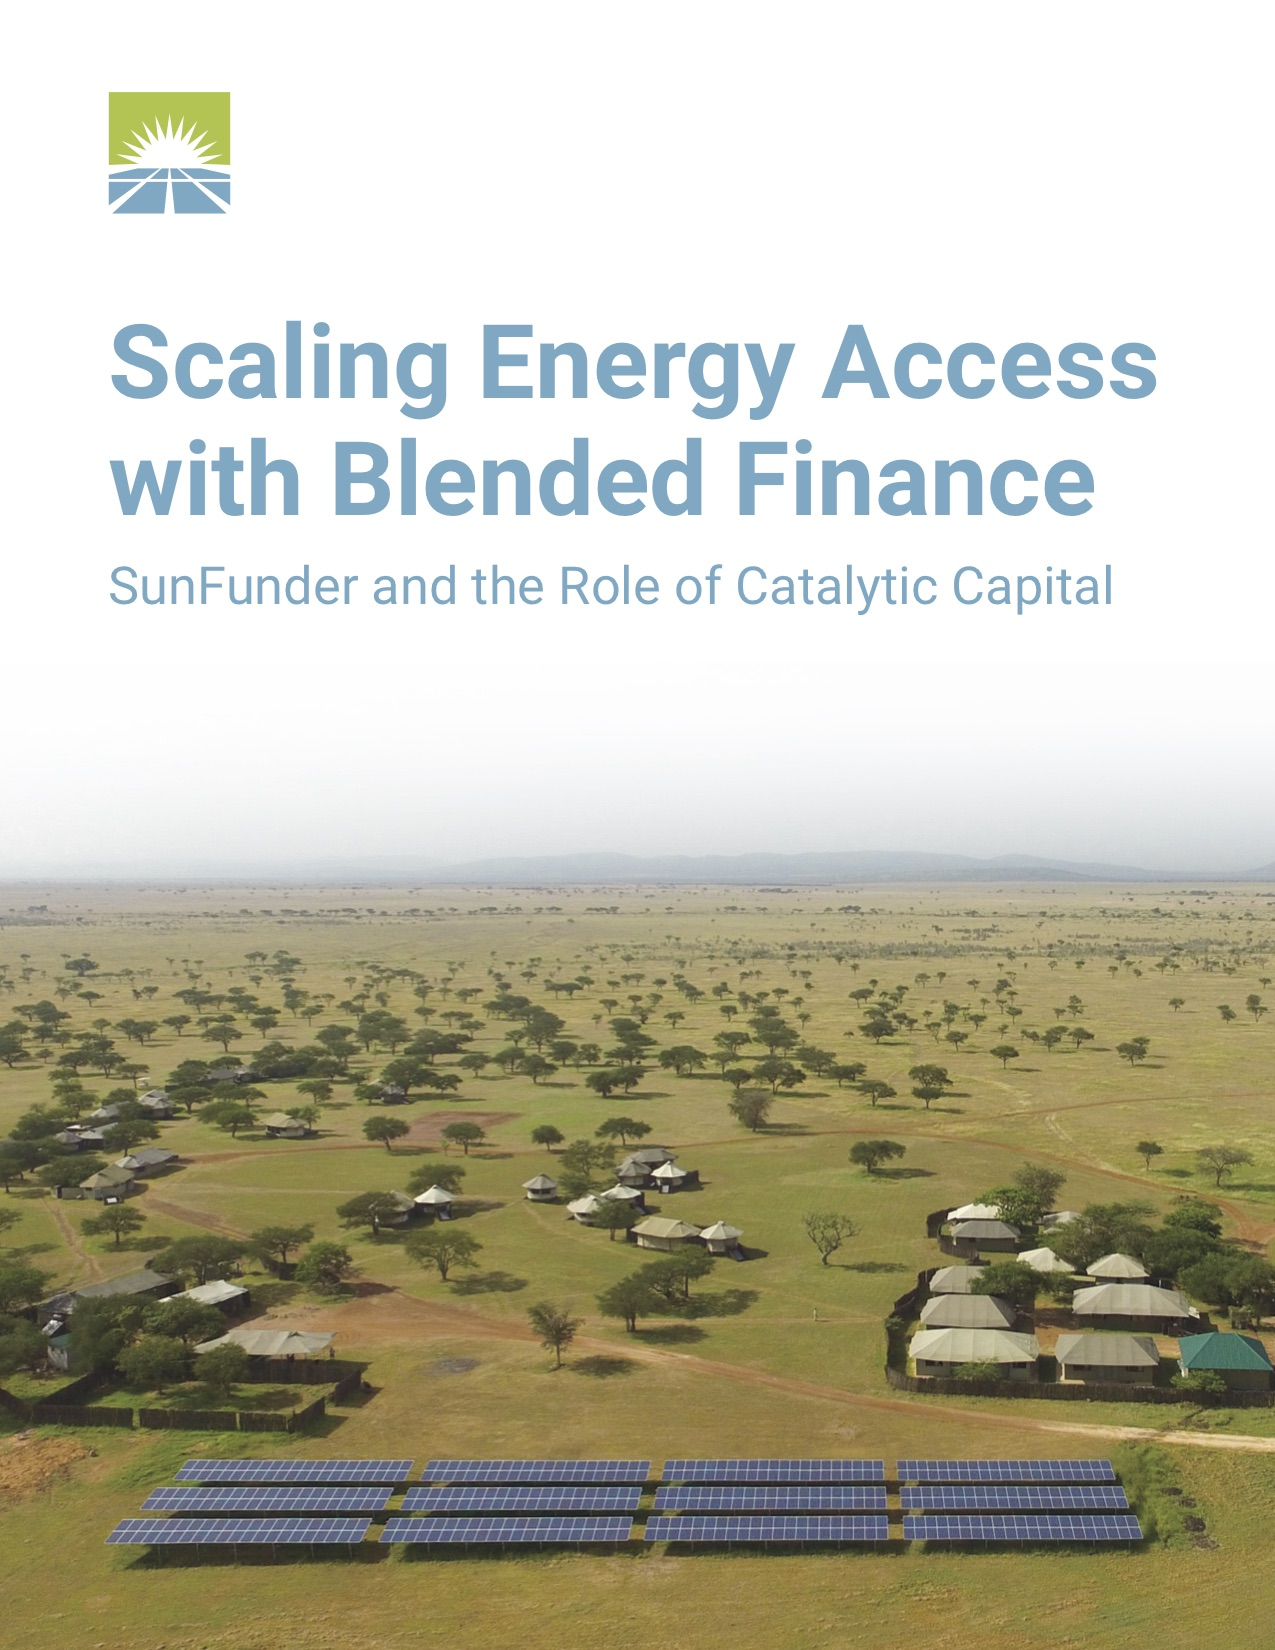 Scaling Energy Access with Blended Finance: SunFunder and the Role of Catalytic Capital